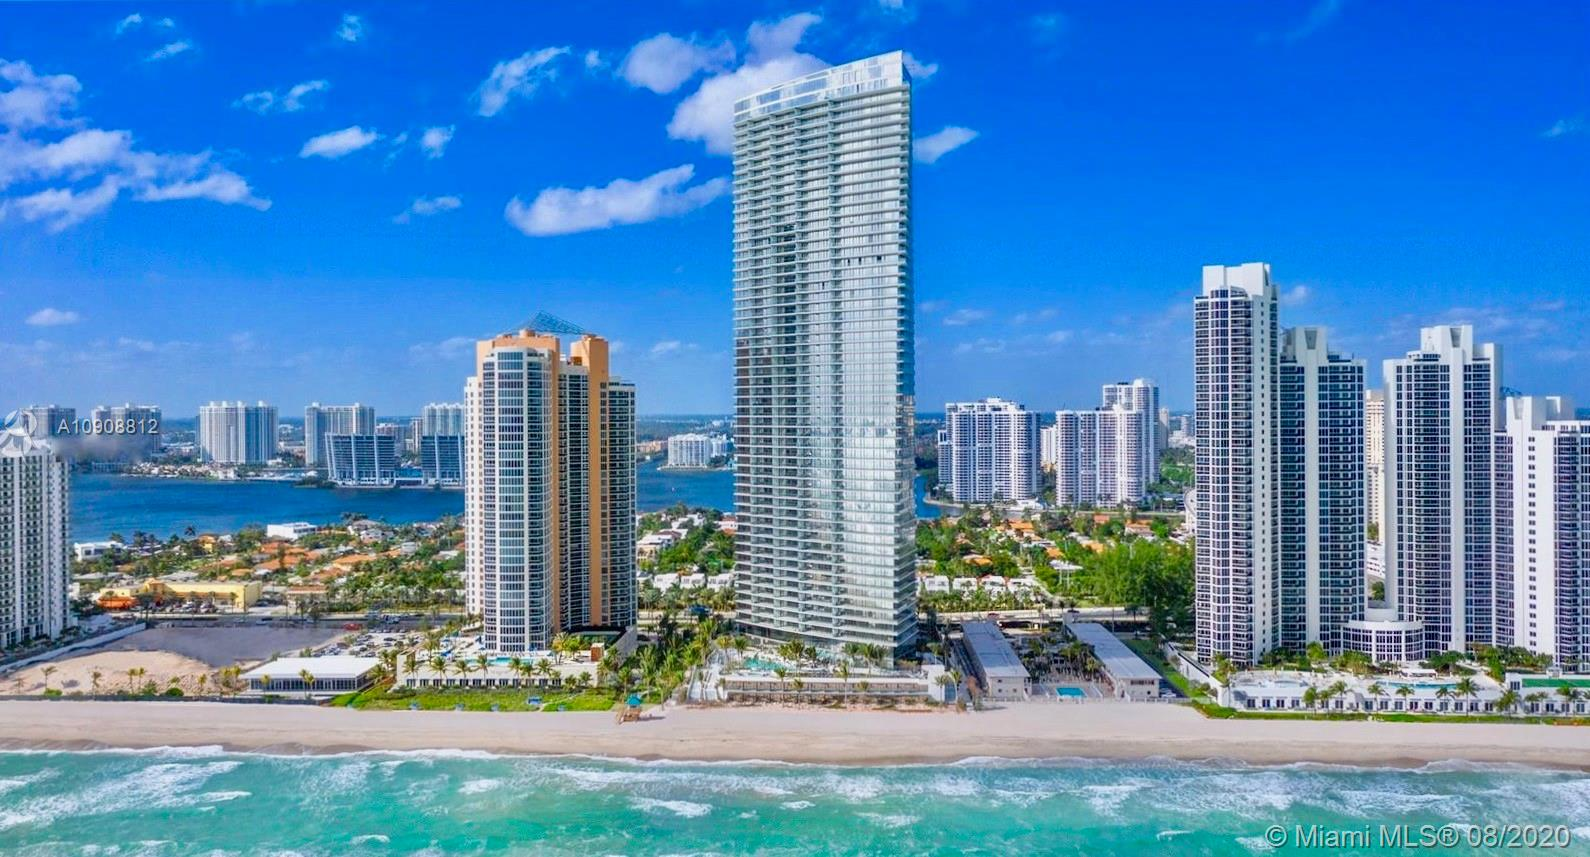 18975 Collins Ave Unit 2902, Sunny Isles Beach, Florida 33160